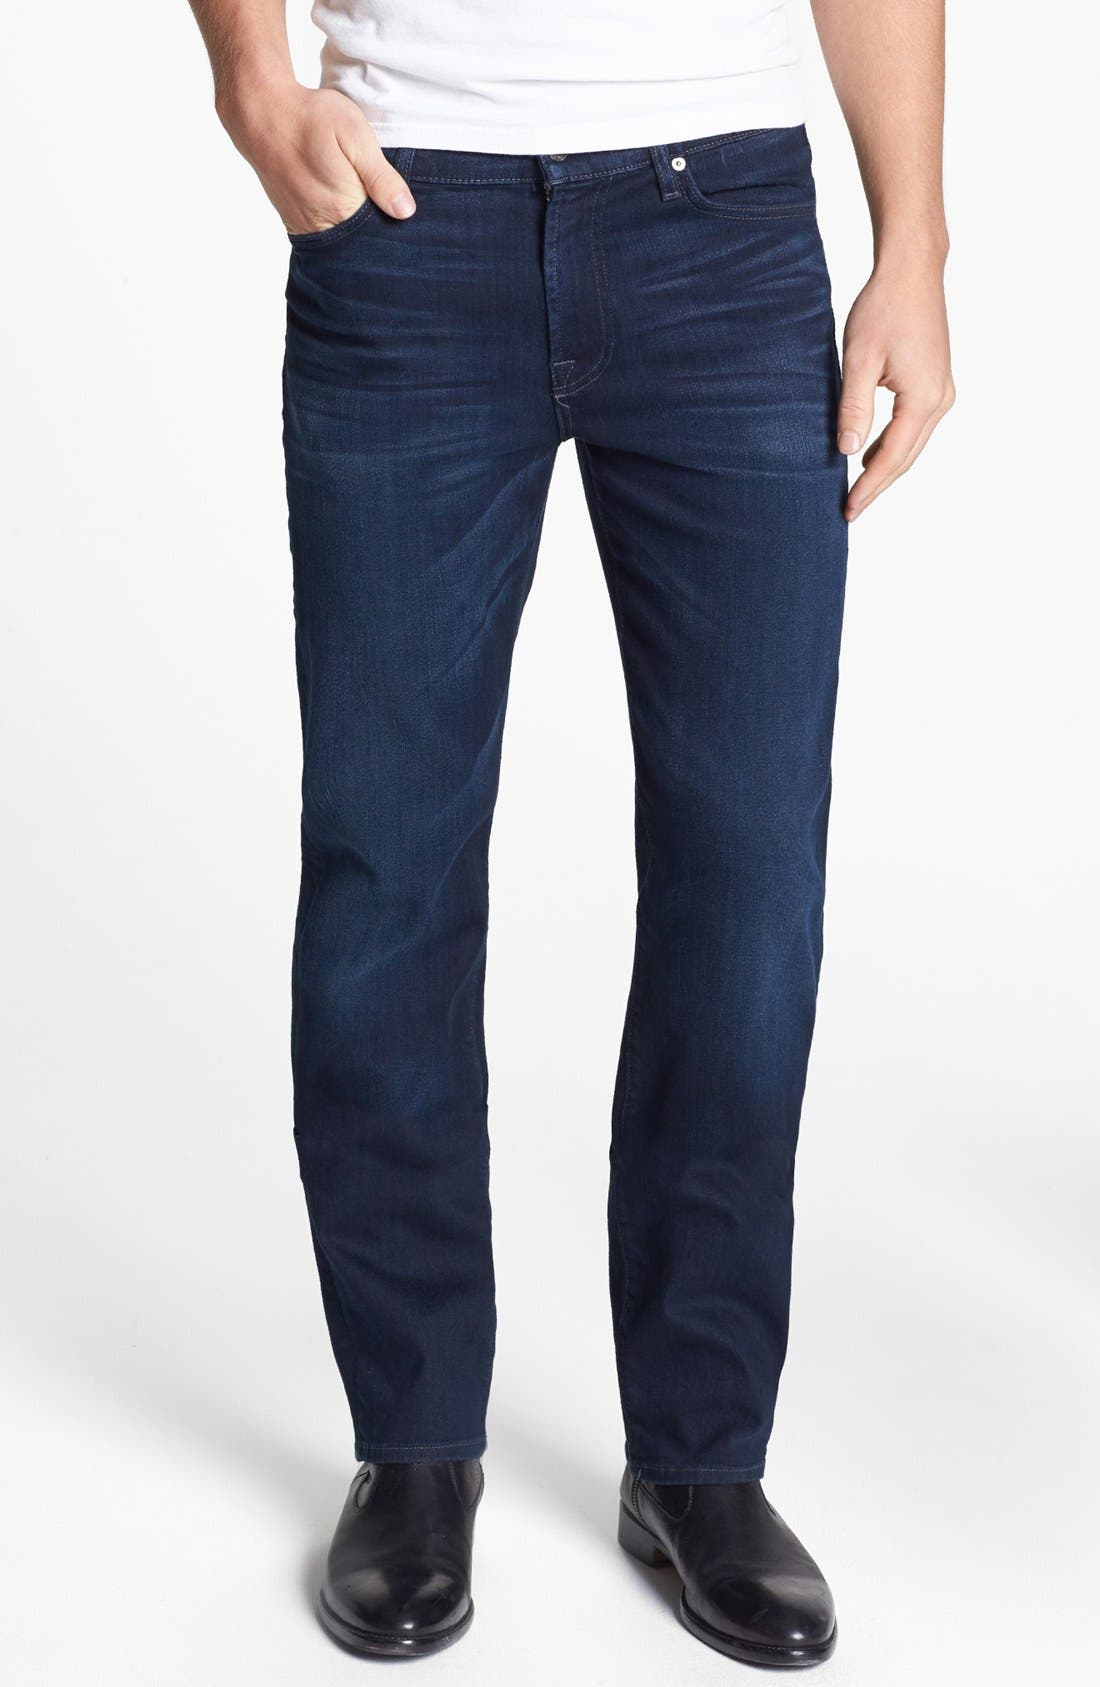 Alternate Image 1 Selected - 7 For All Mankind® 'Slimmy - Luxe Performance' Slim Fit Jeans (Blue Ice)